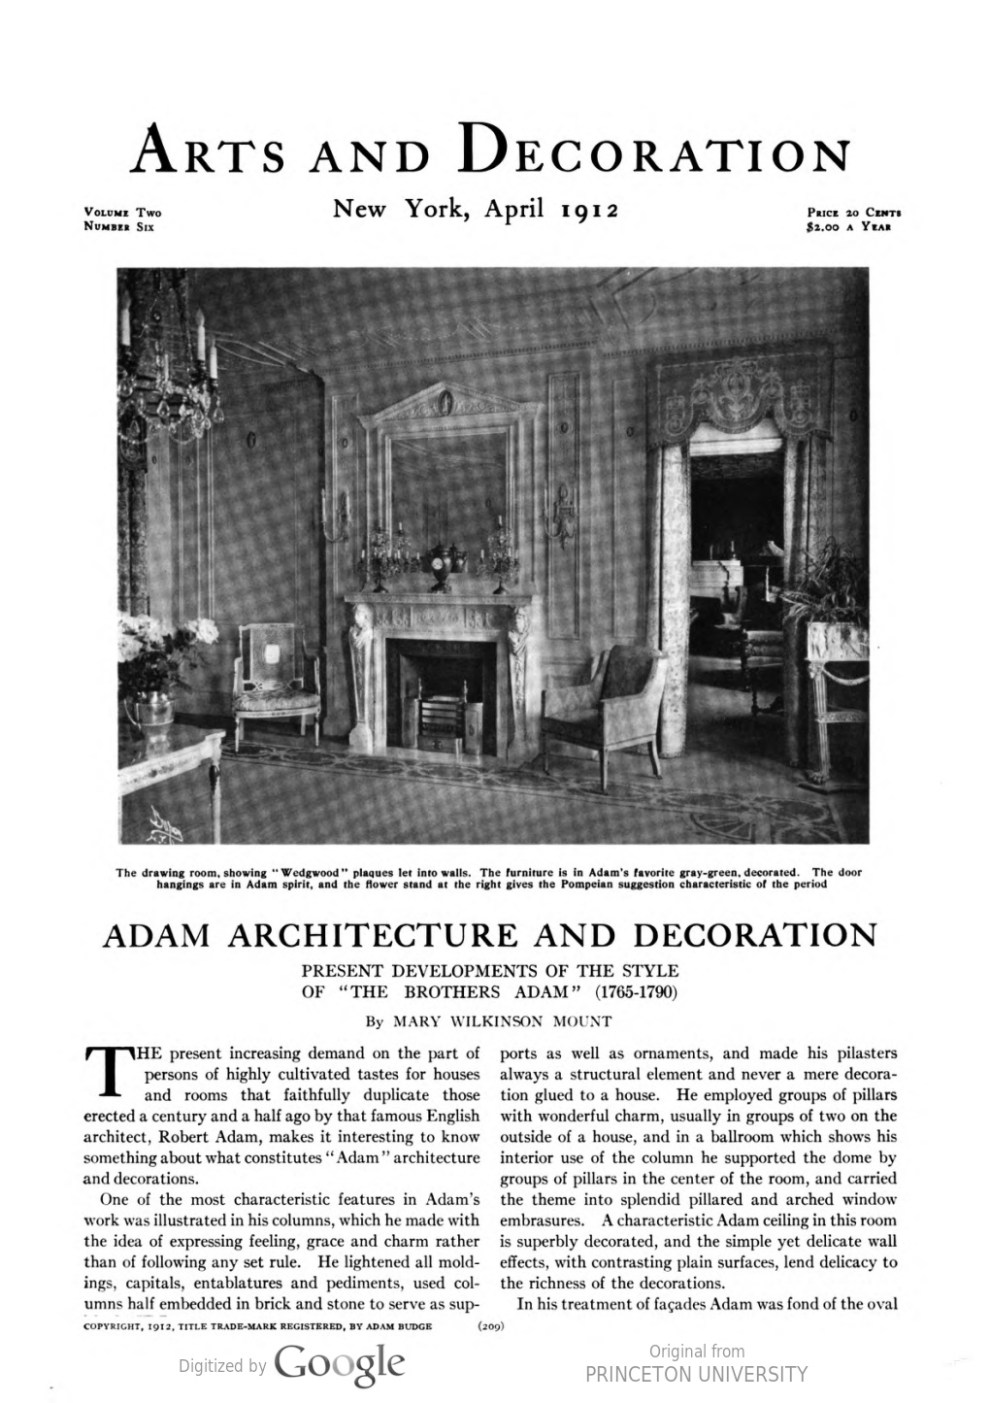 """Arts and Decoration, New York, NY, """"Exhibitions at the Galleries"""", April, 1912, Volume 2, Number 6, page 228, not illustrated"""